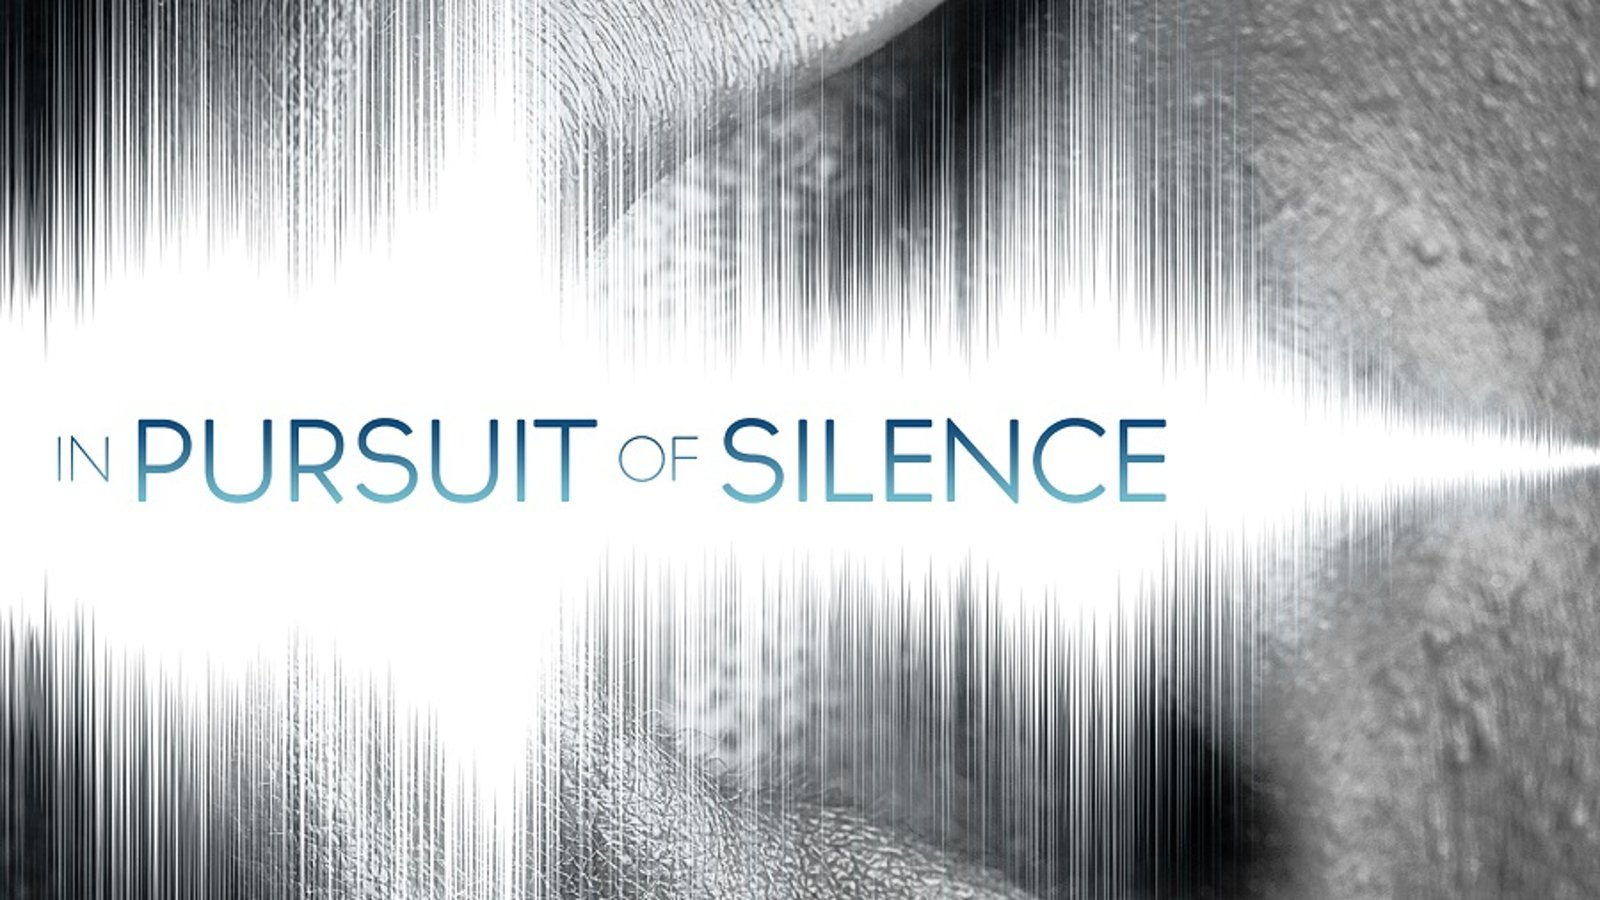 In Pursuit Of Silence - Meditating on Our Relationship to Sound and Silence